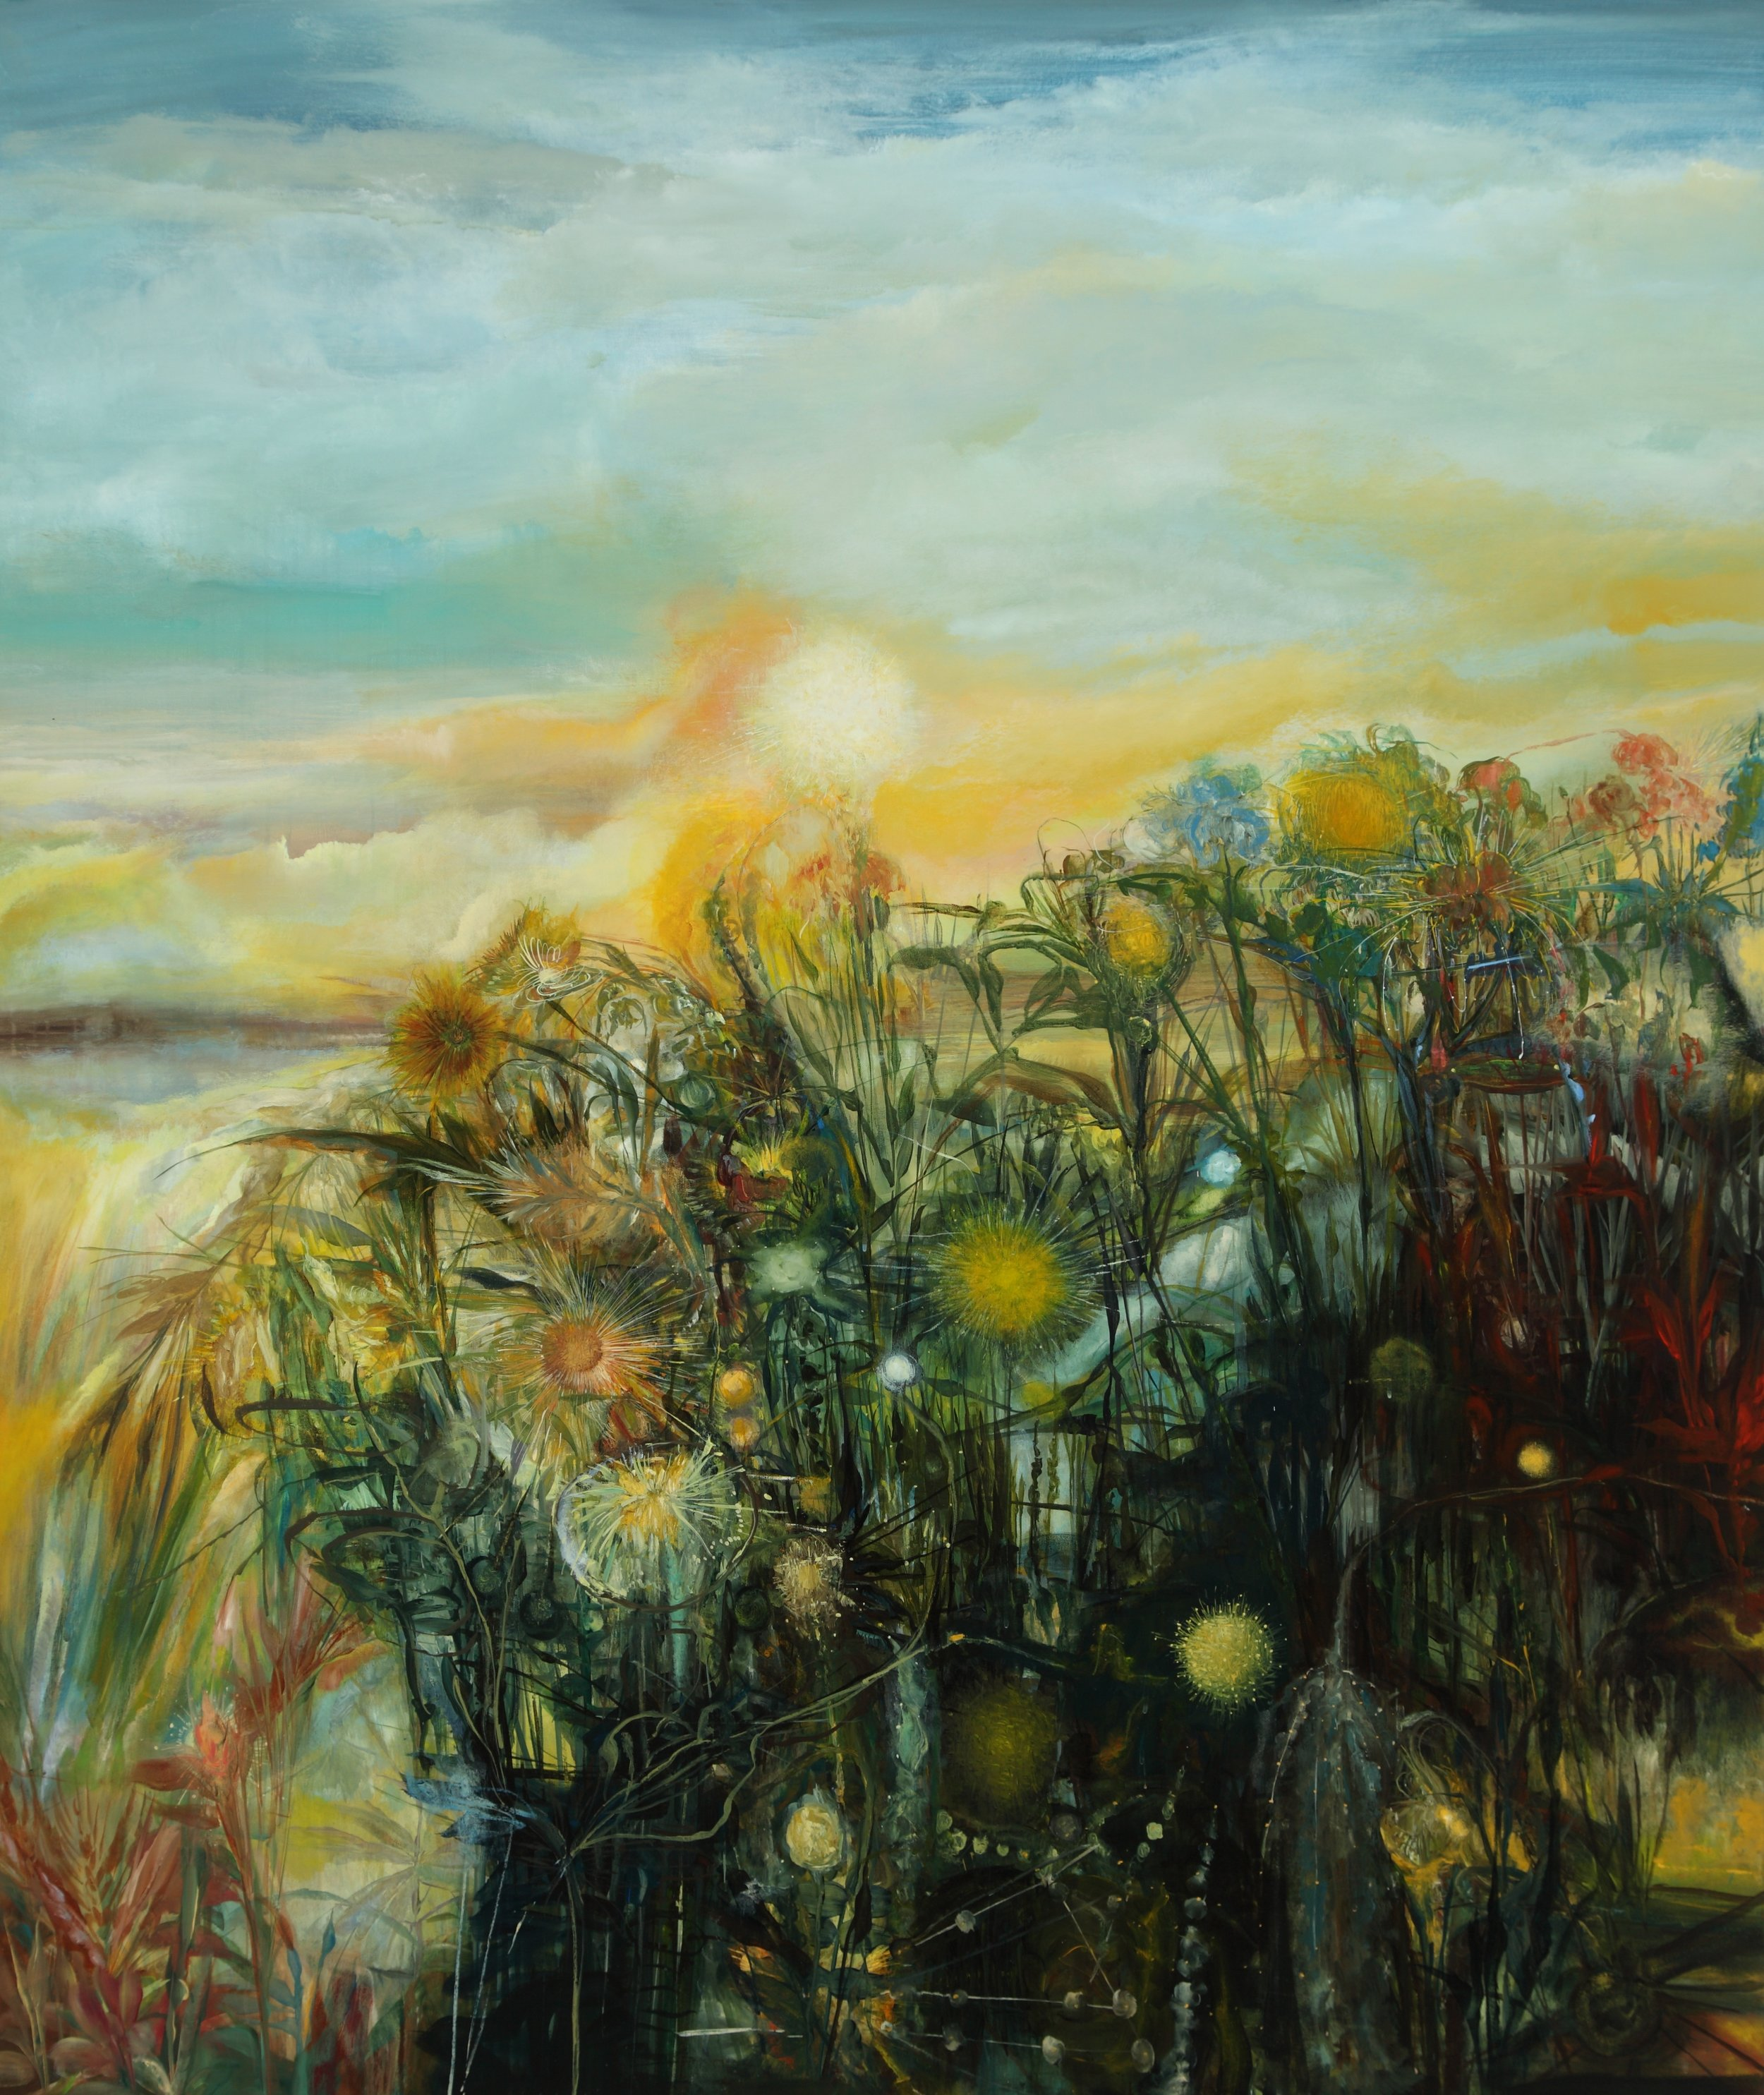 Flowers that Speak, Sunrise 2010-2013, 78 x 66 inches, acrylic on canvas